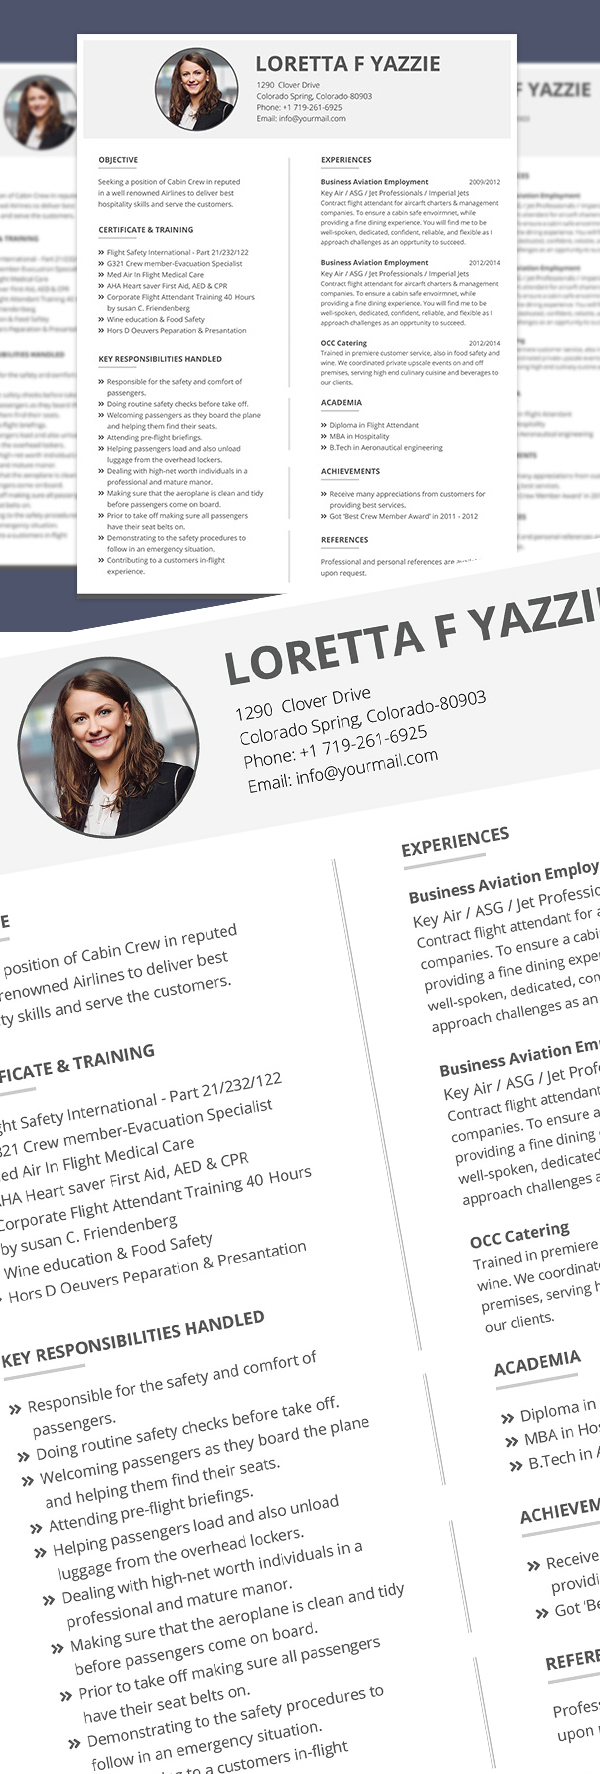 25 Fresh Free Professional Resume Templates - 16